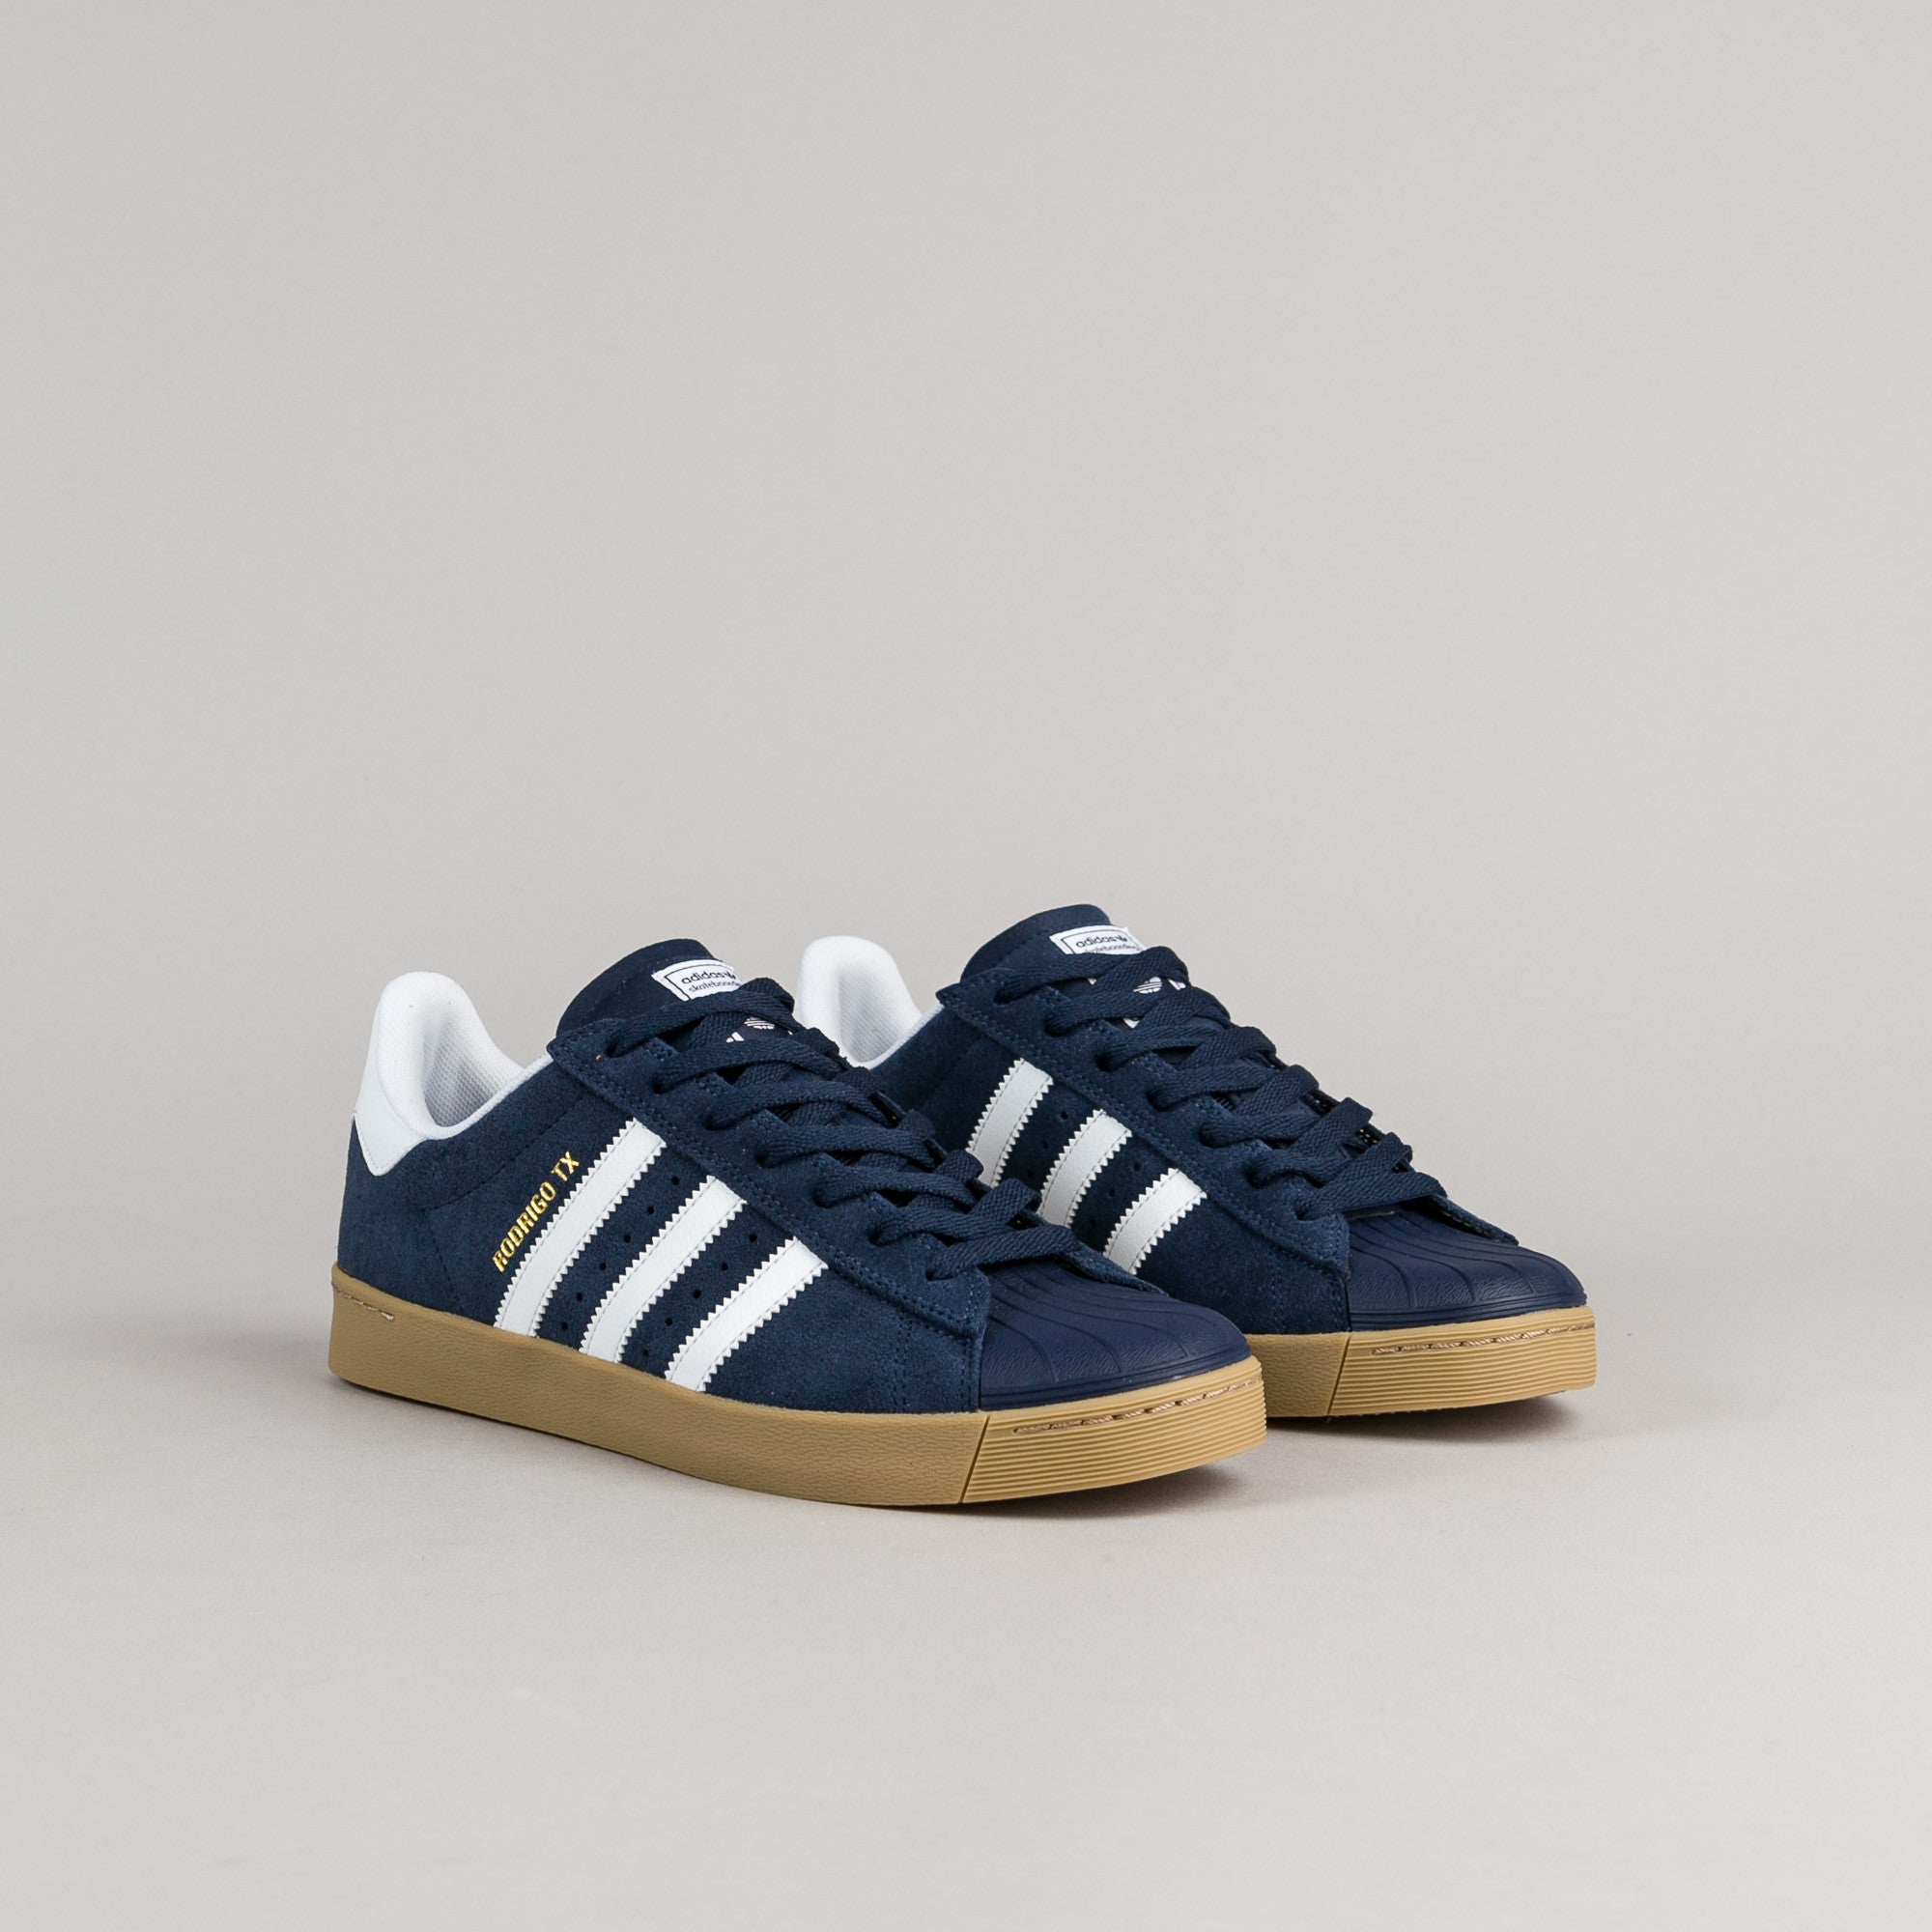 SNOW, SKATE and STREET :: Cheap Adidas Superstar Vulc ADV (F 37463